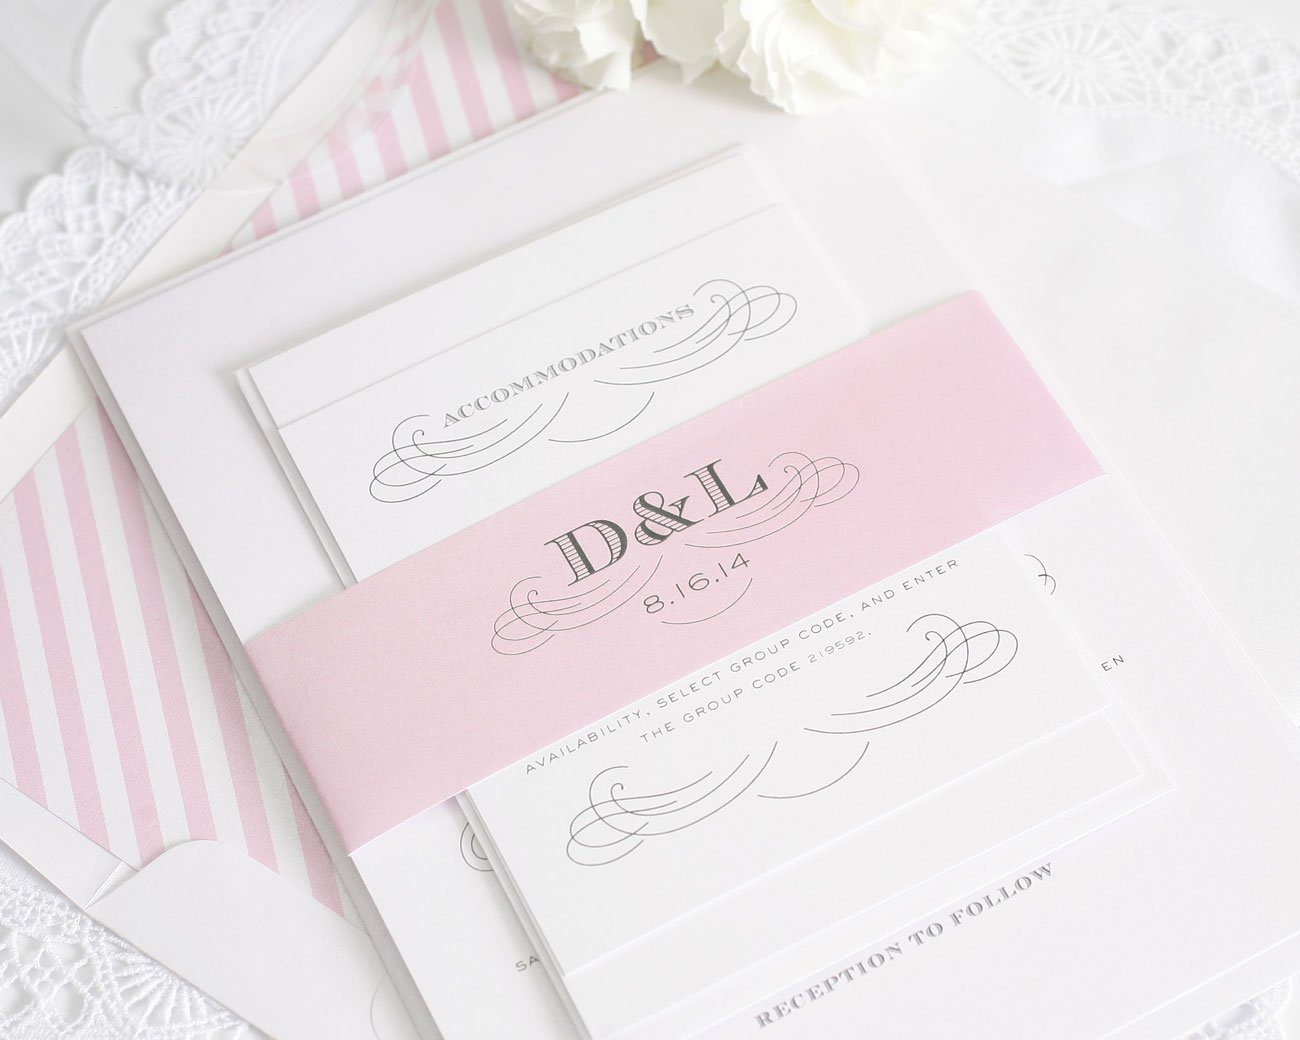 Monogram wedding invitations in blossom pink